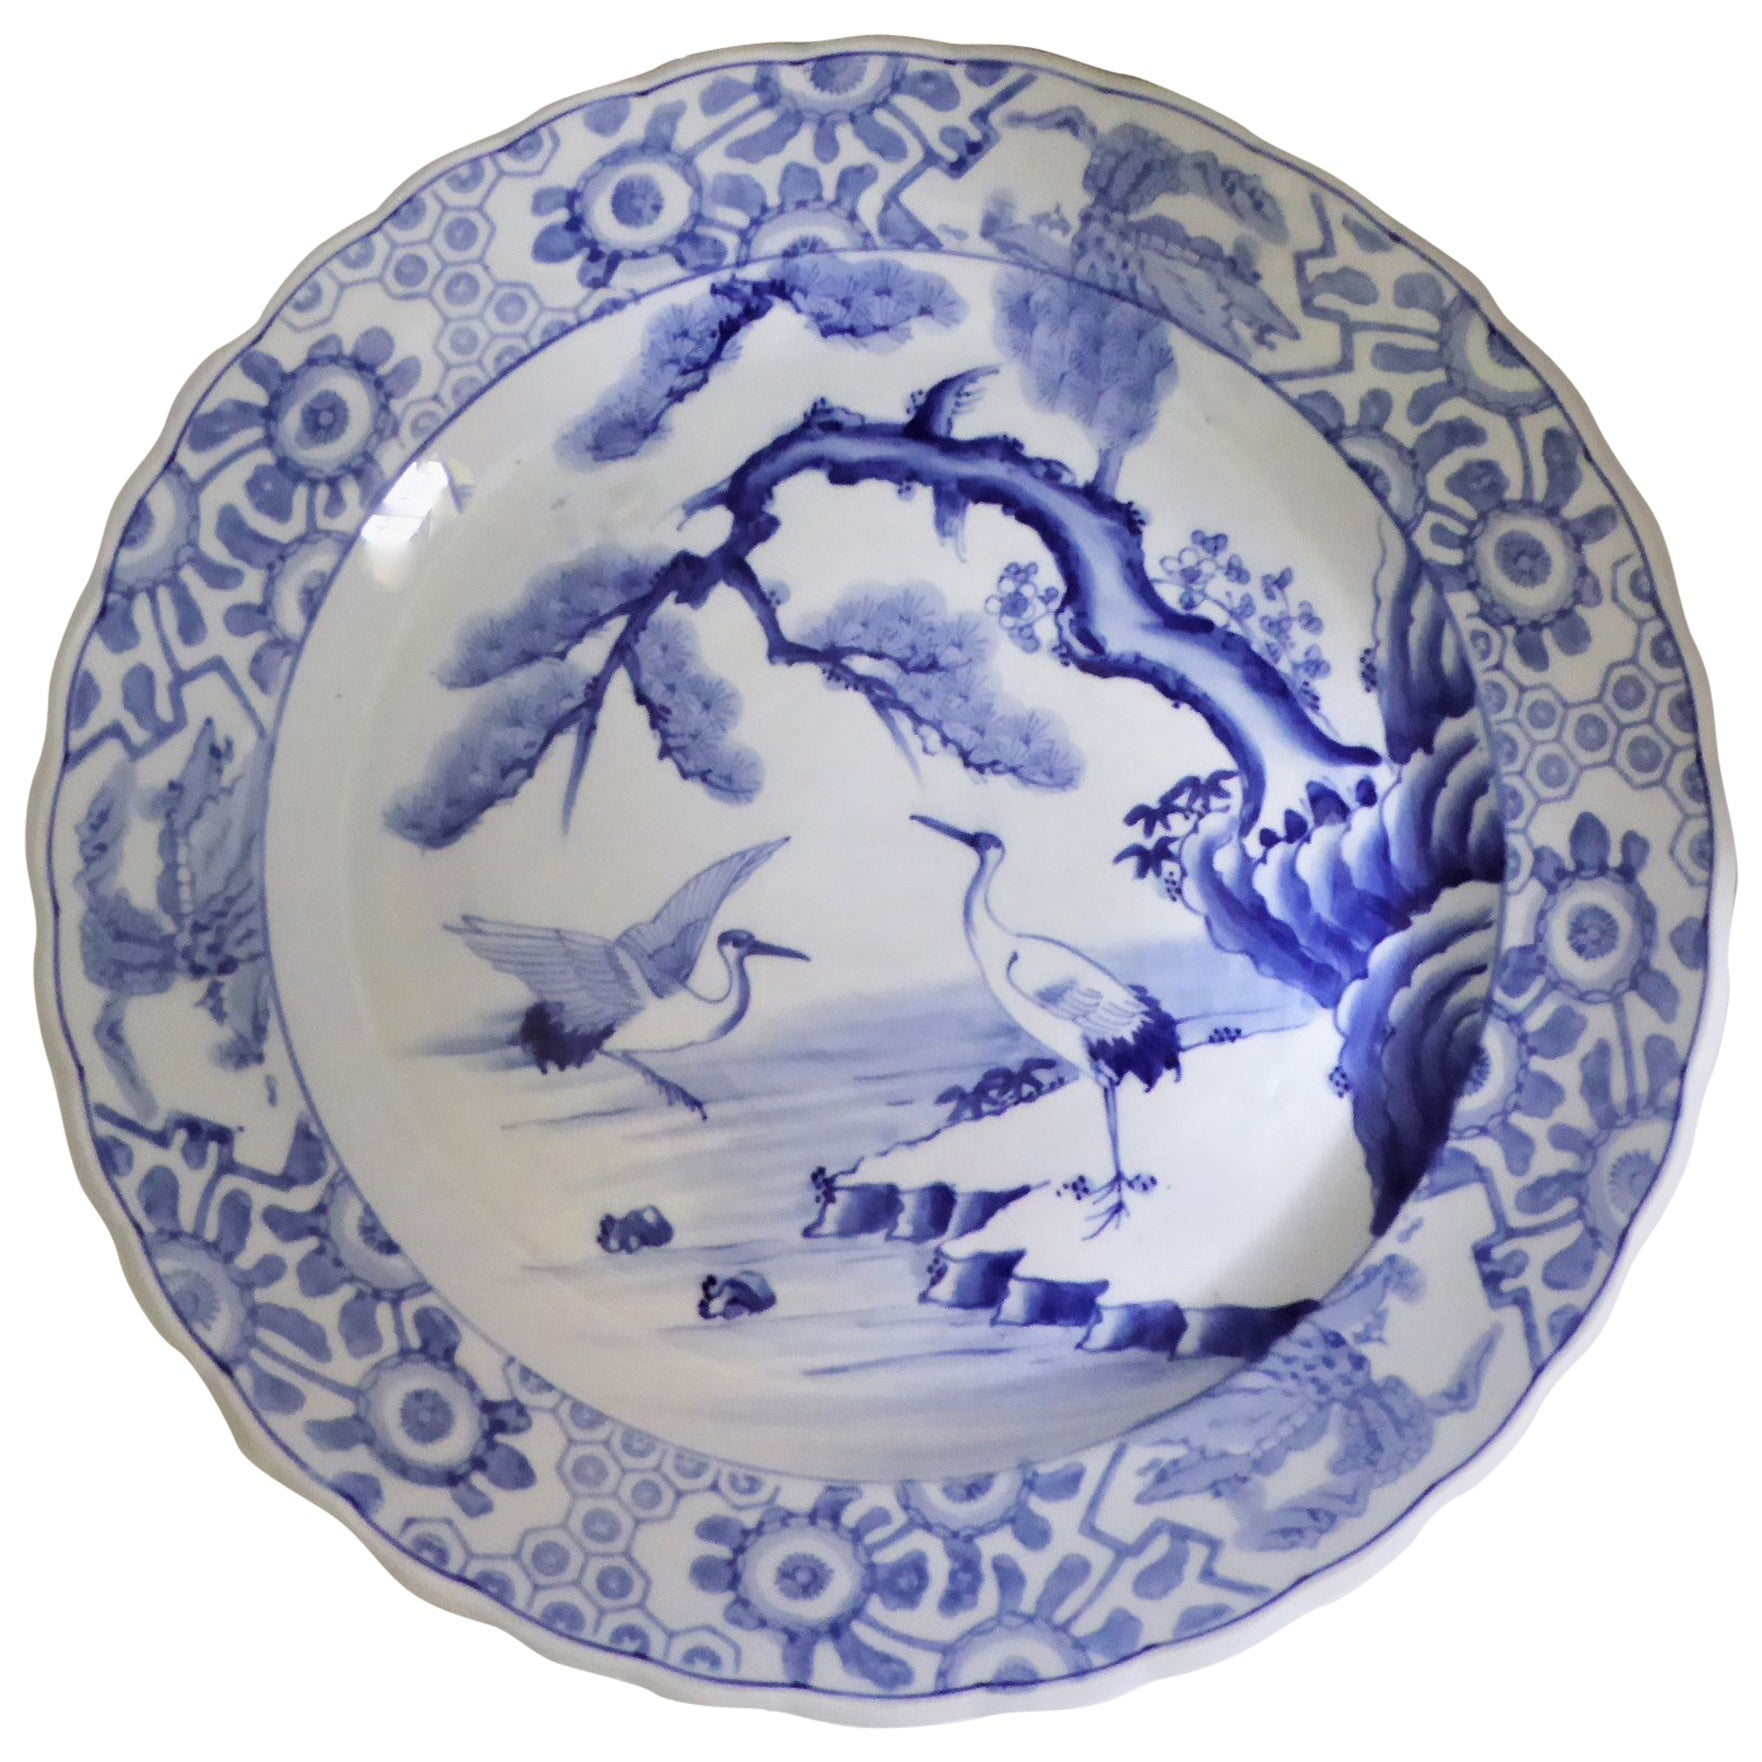 Blue White Japanese Charger with Pair of Cranes and Turtles Meiji Period